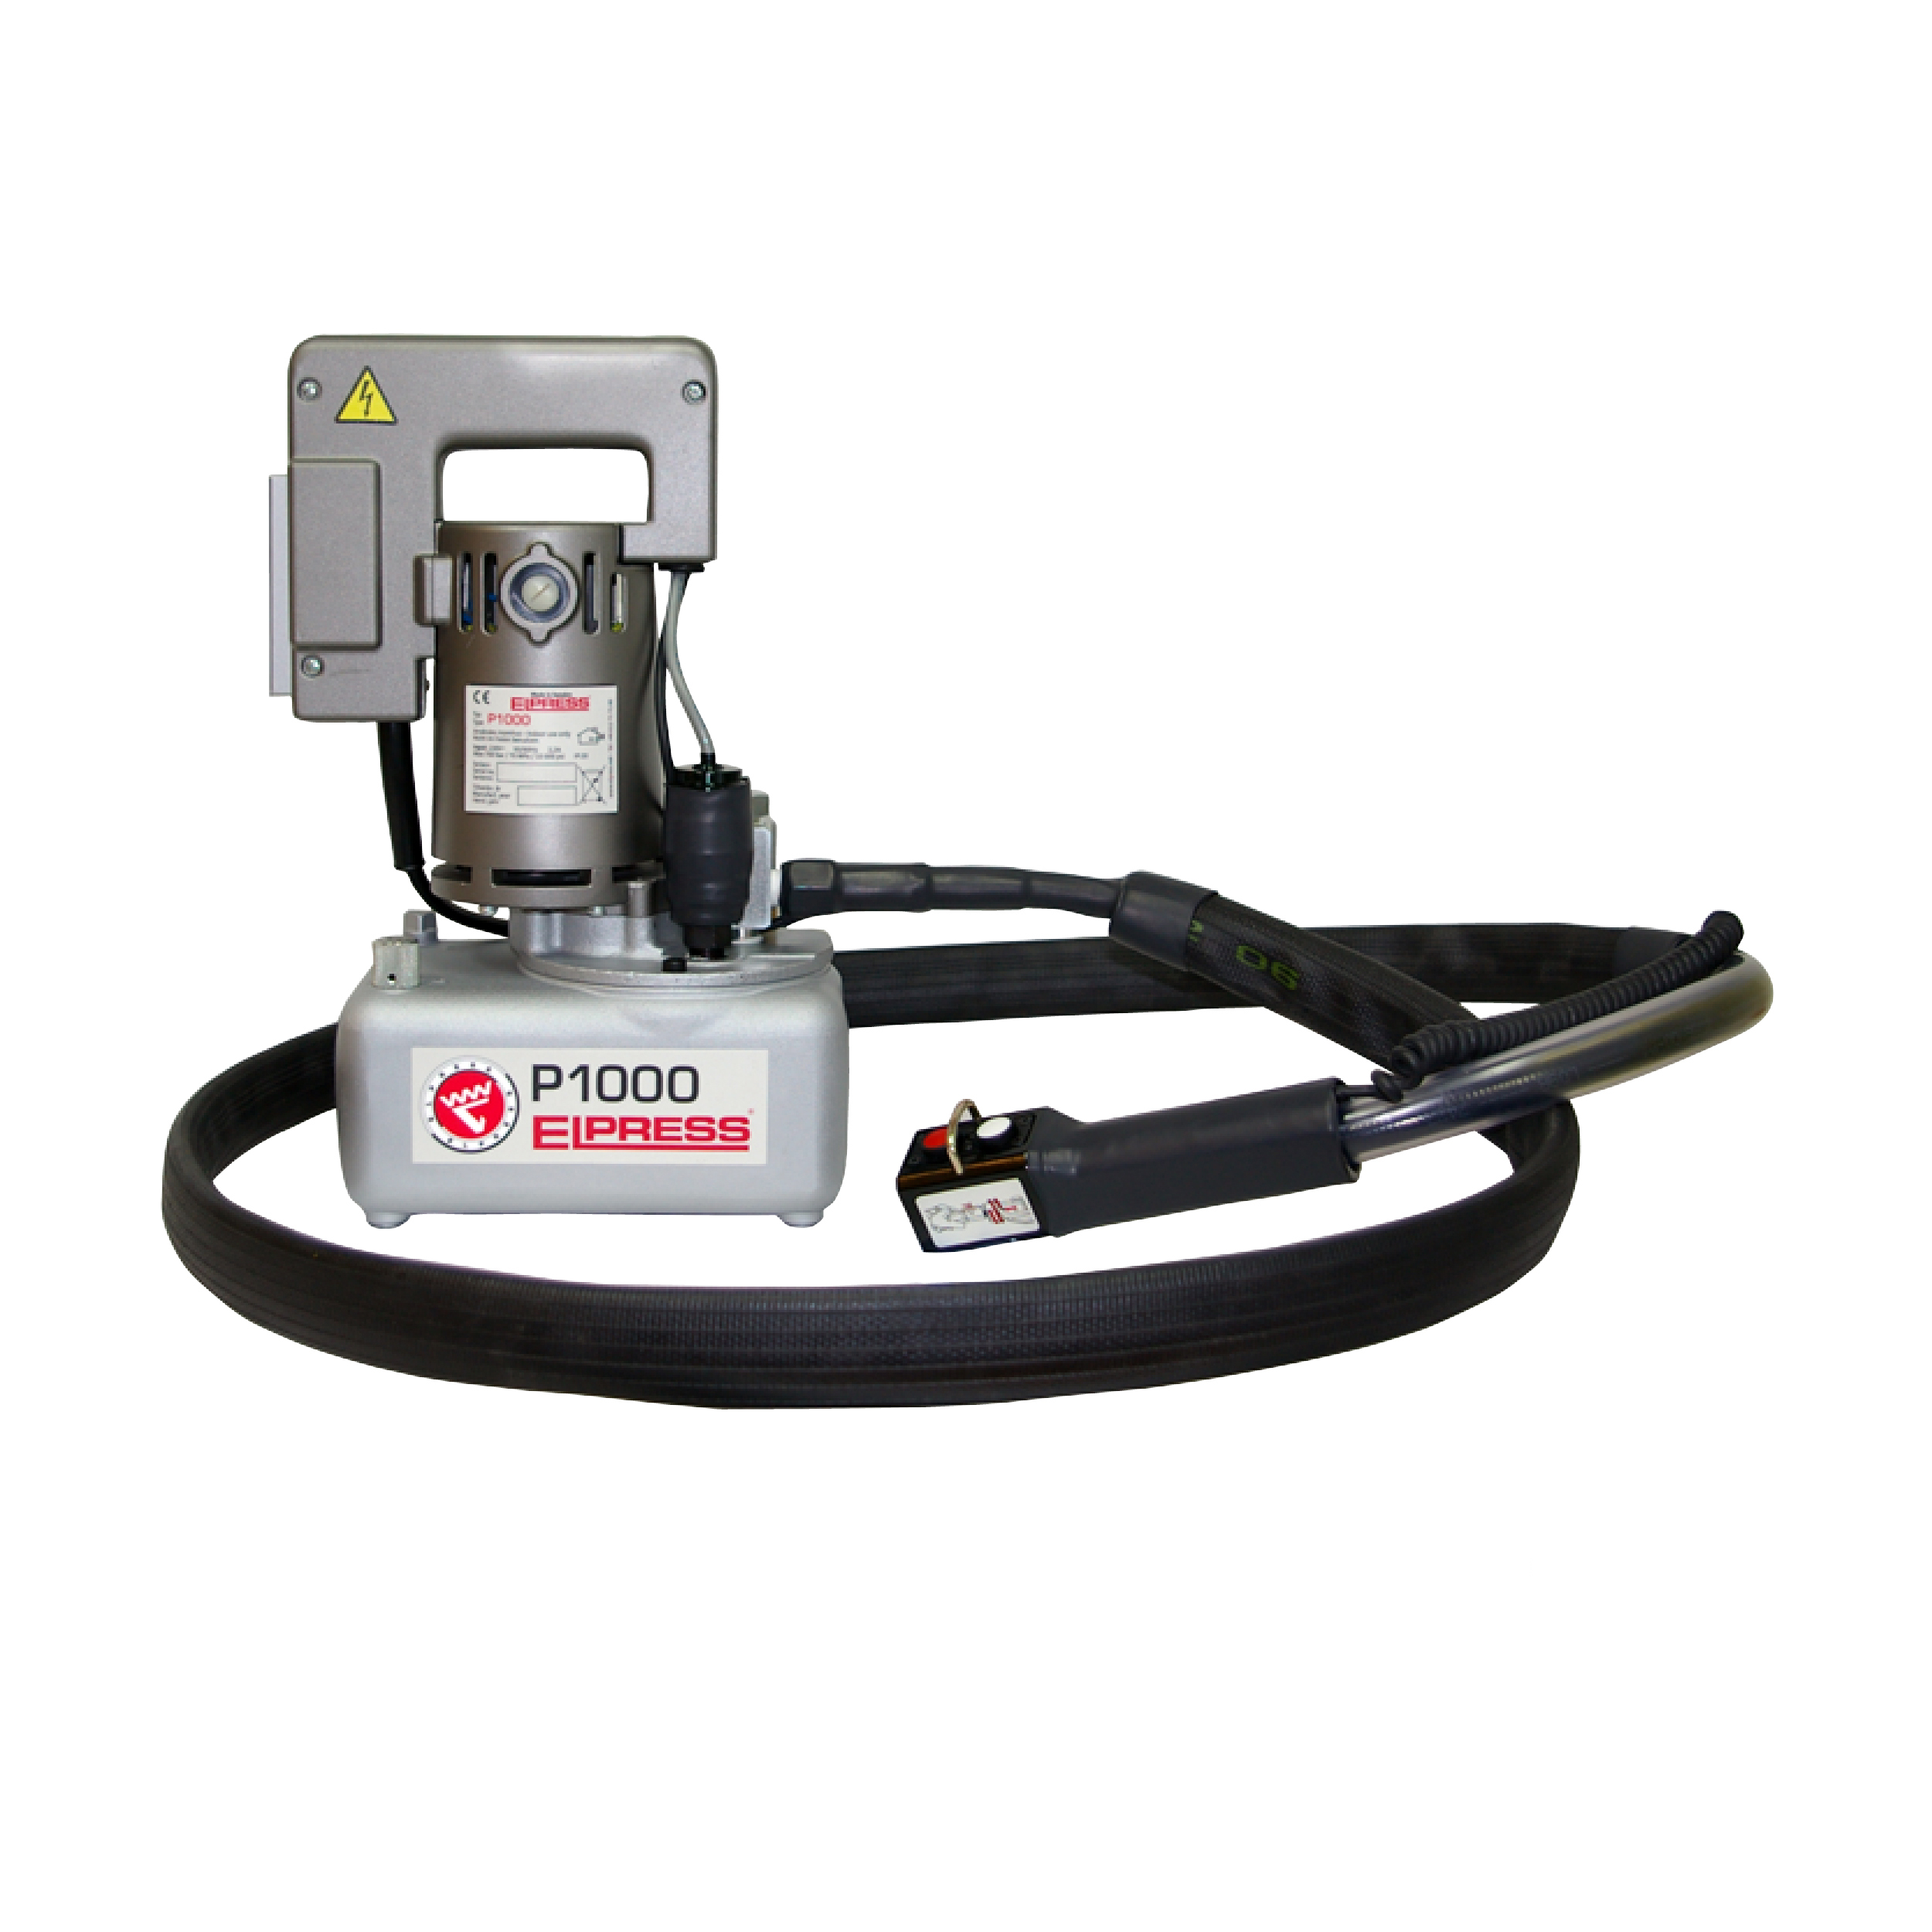 Elpress P1000 Mains Powered Pump